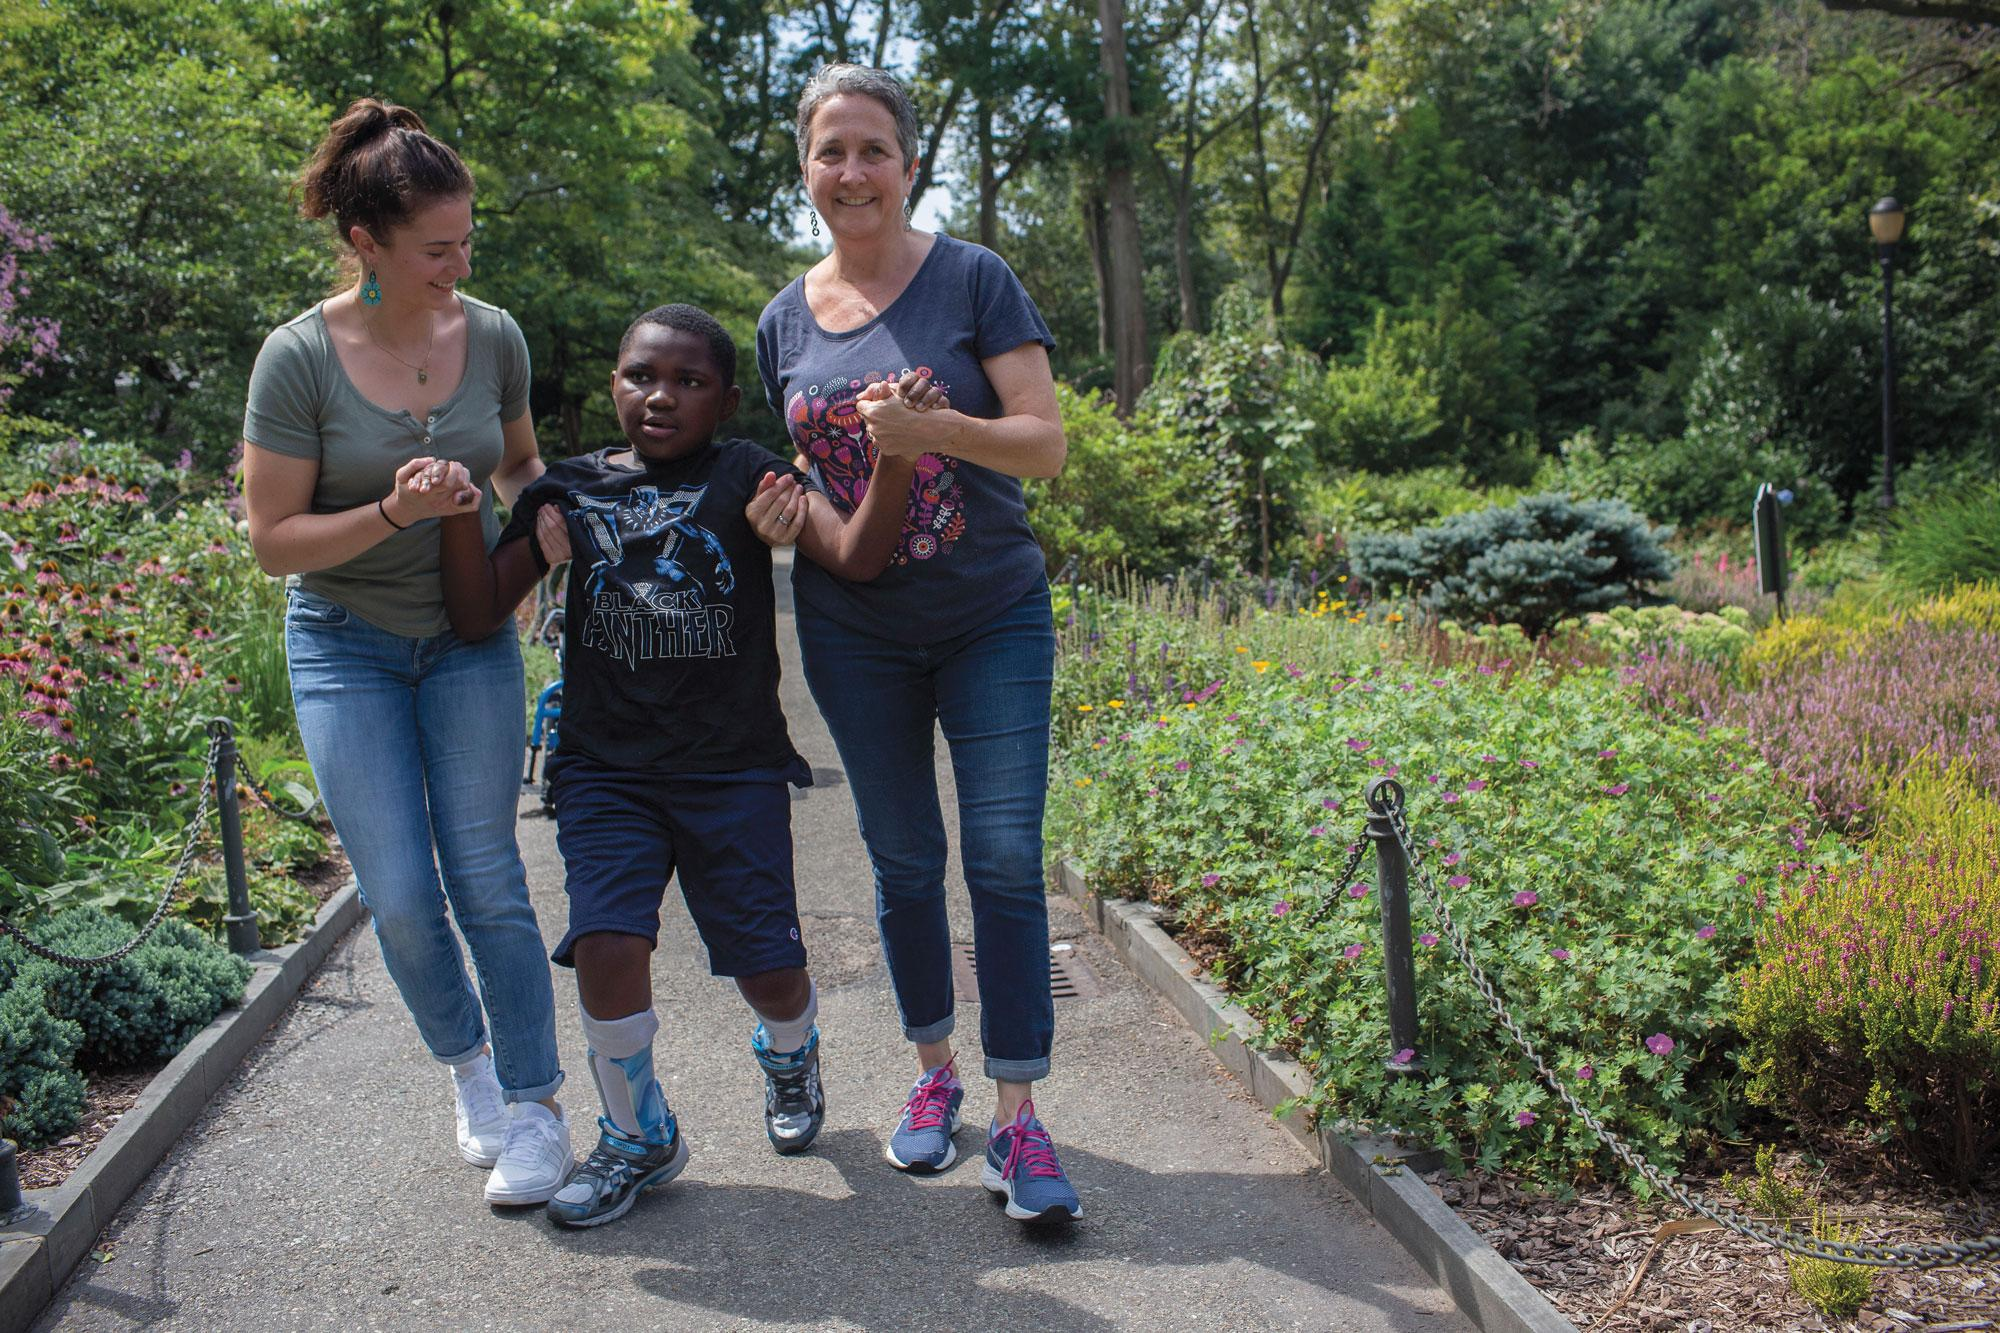 Sarah Weltz, Sandra Joy Stein, and Stein's son walking down a garden path